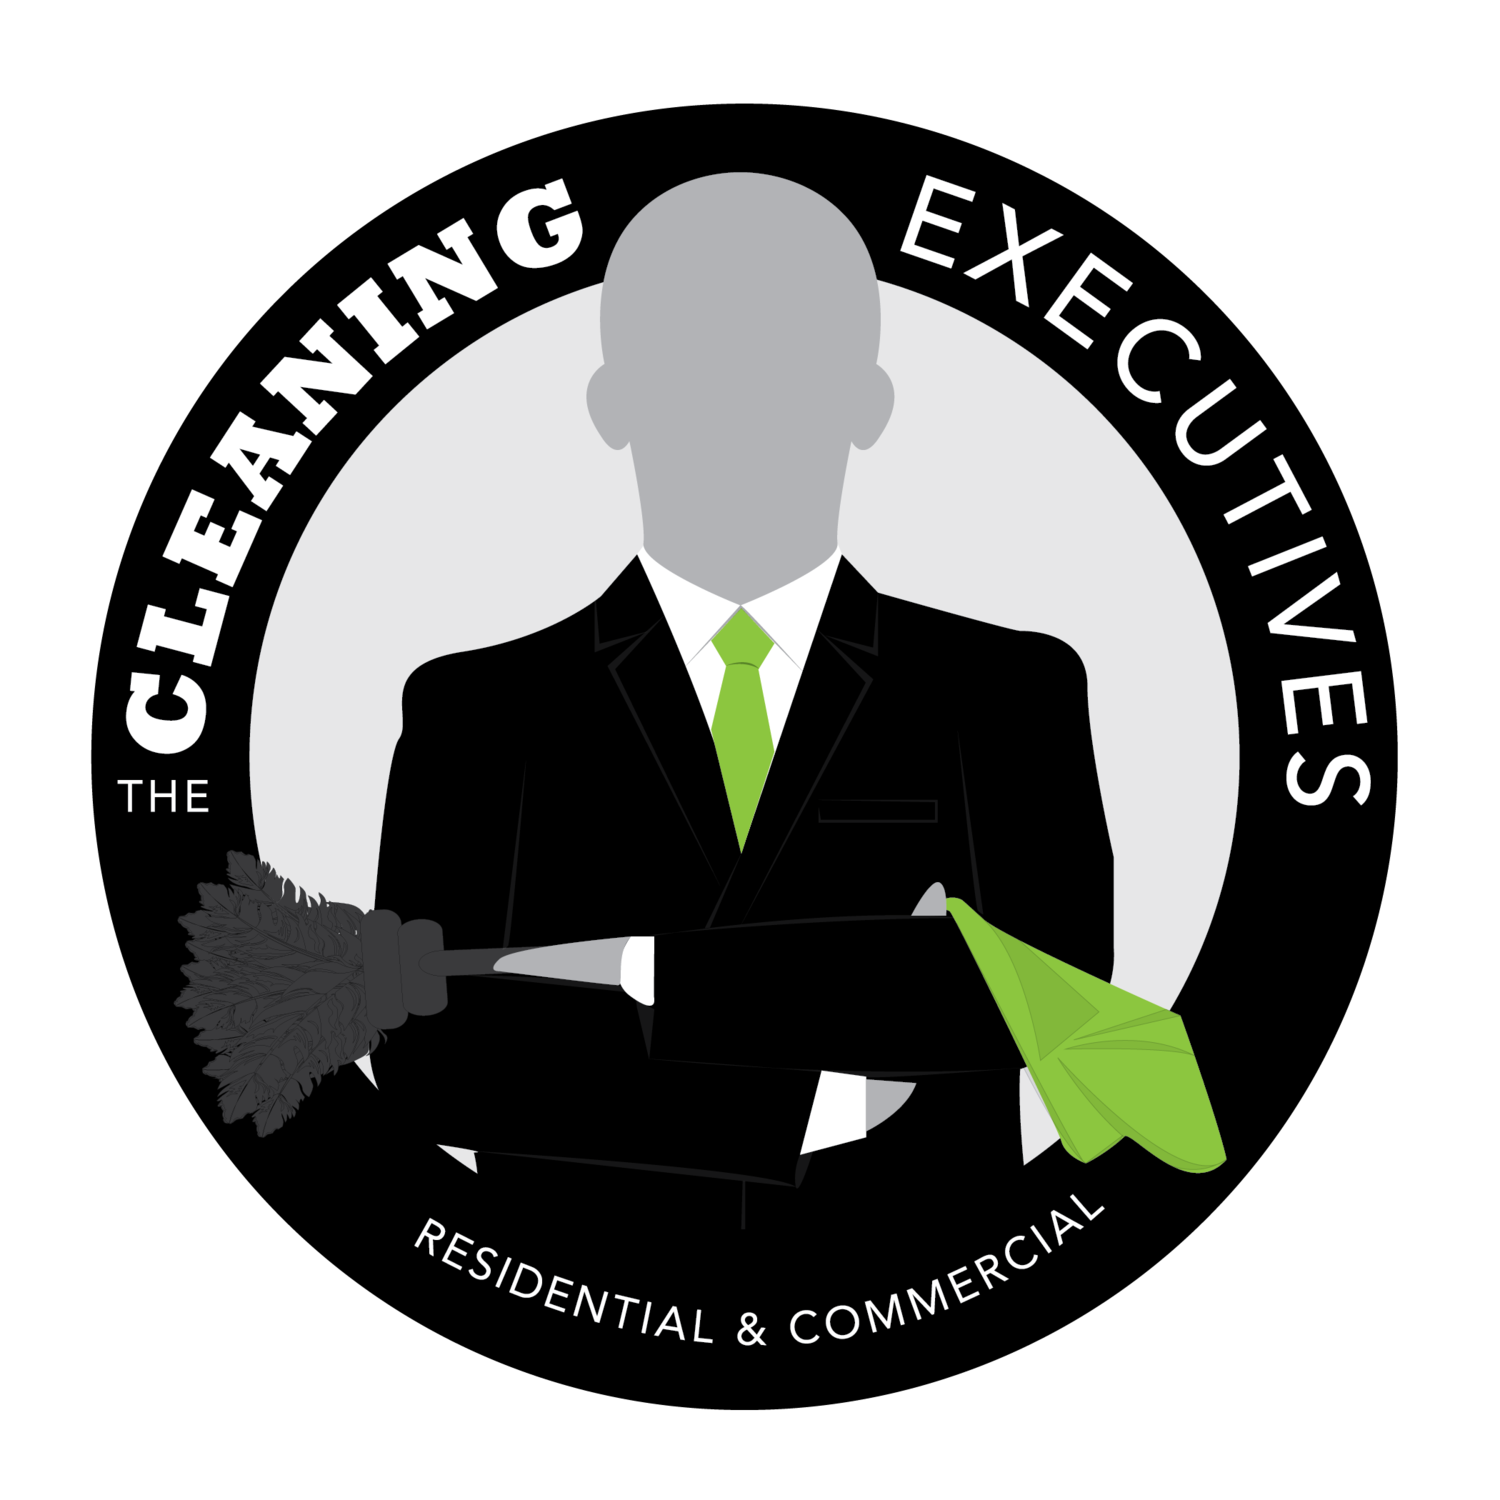 The Cleaning Executives